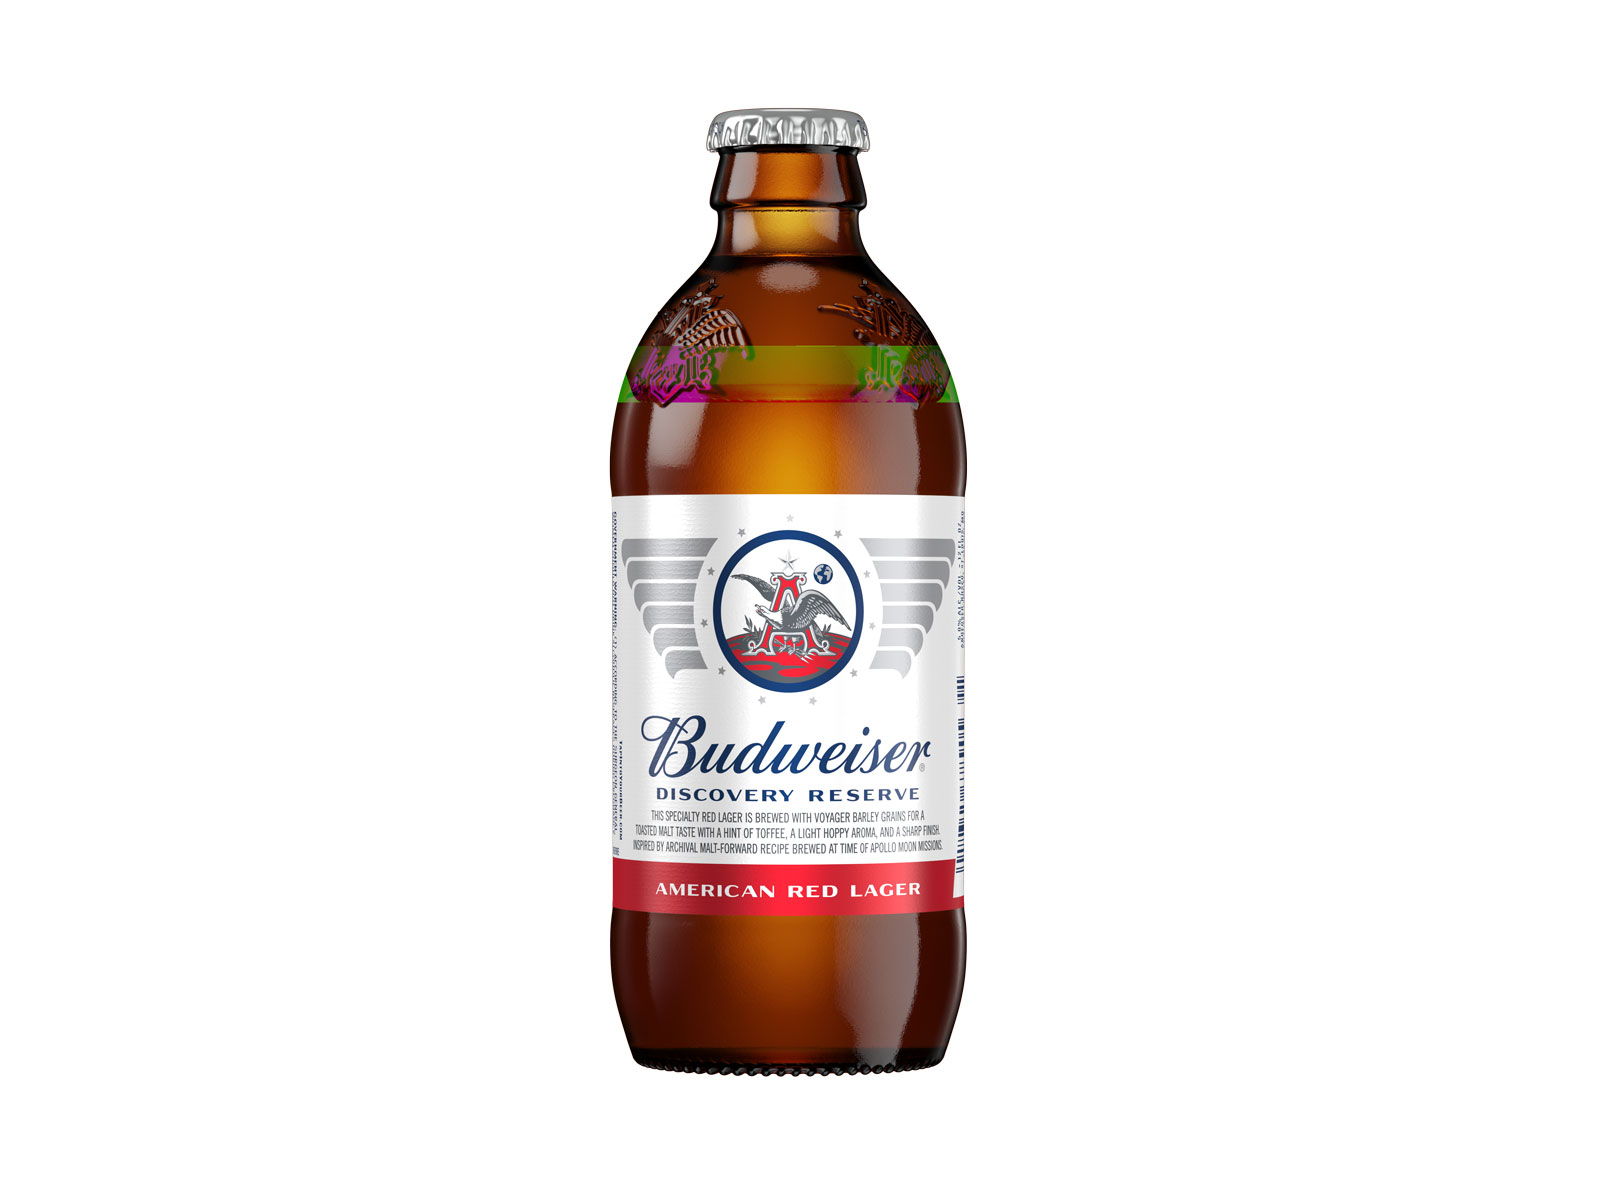 Budweiser Discovery Reserve